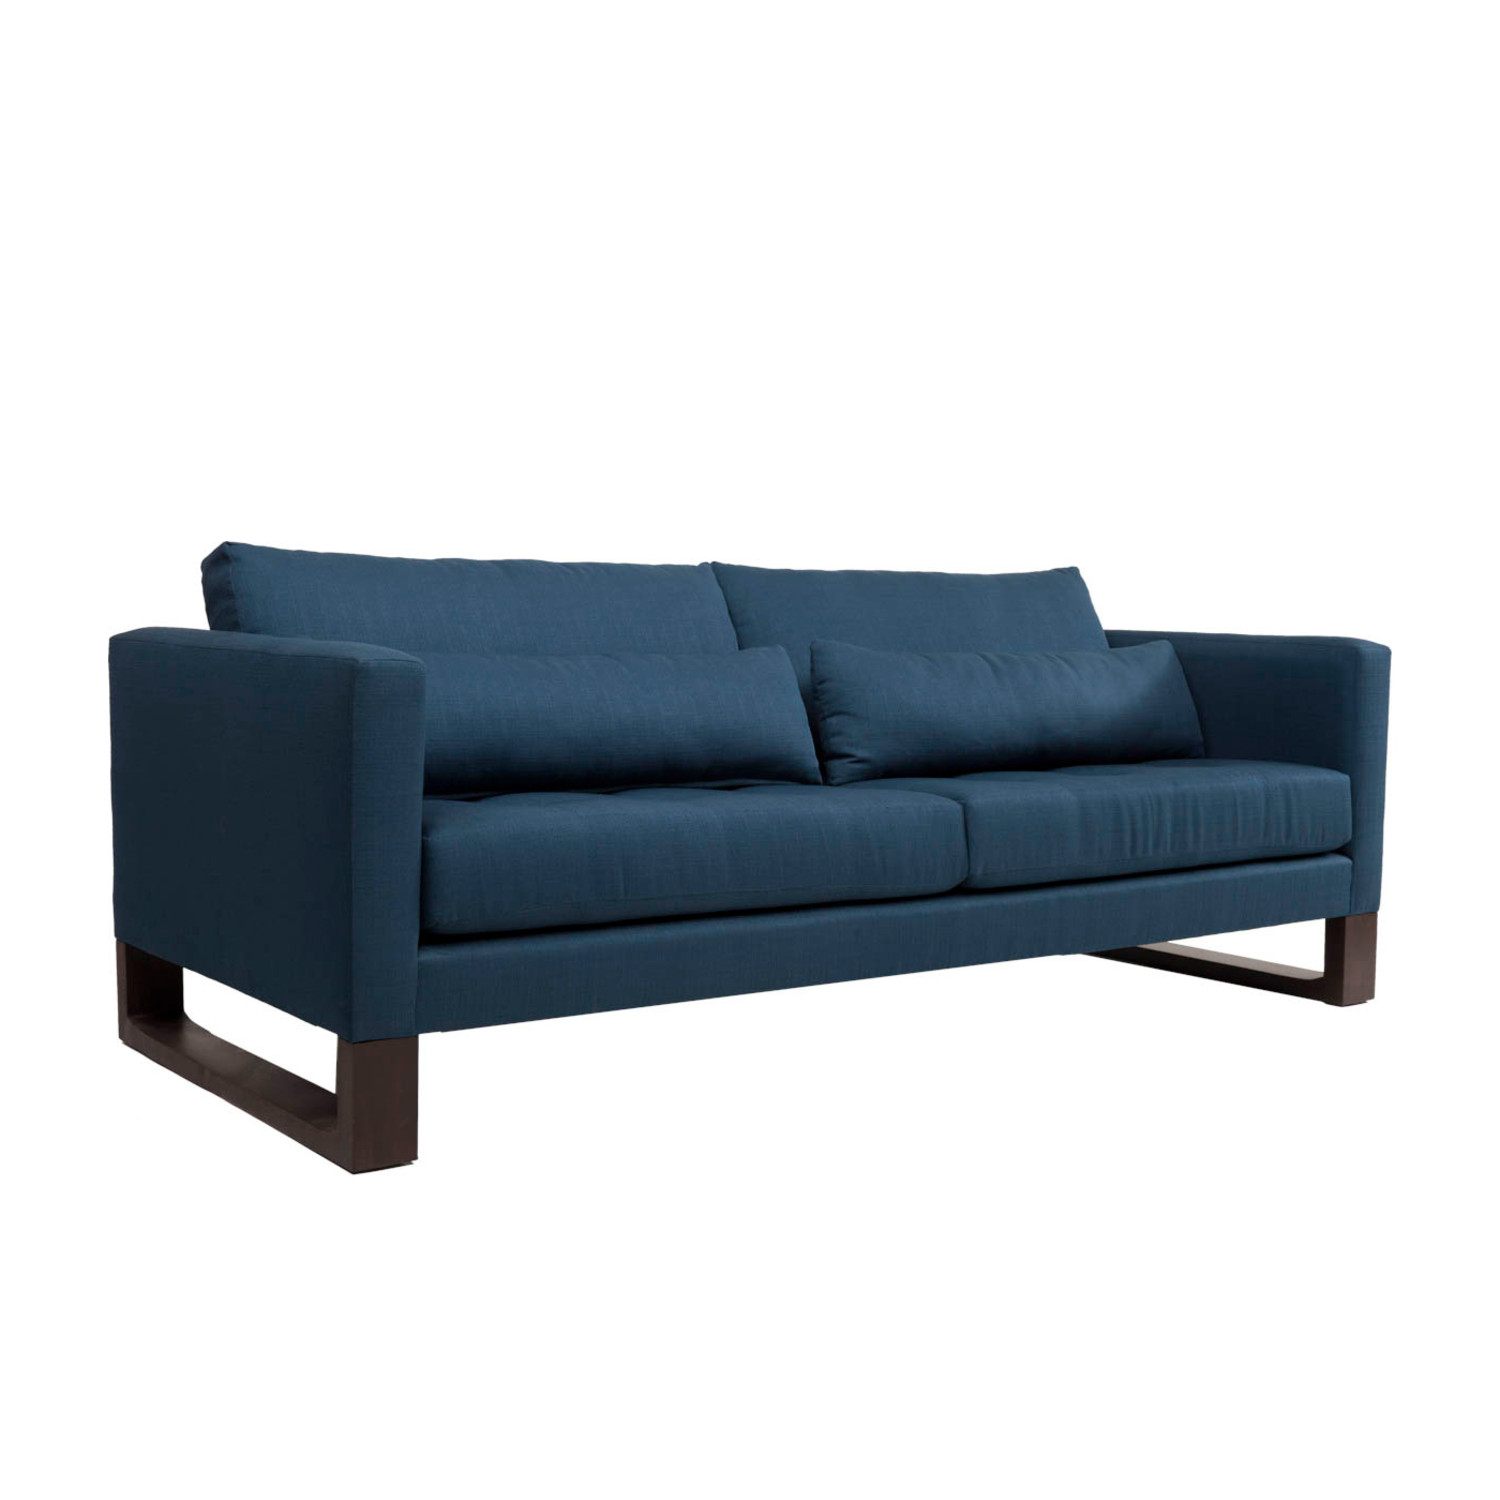 Hendrix sofa jaxon home touch of modern for L furniture warehouse victoria bc